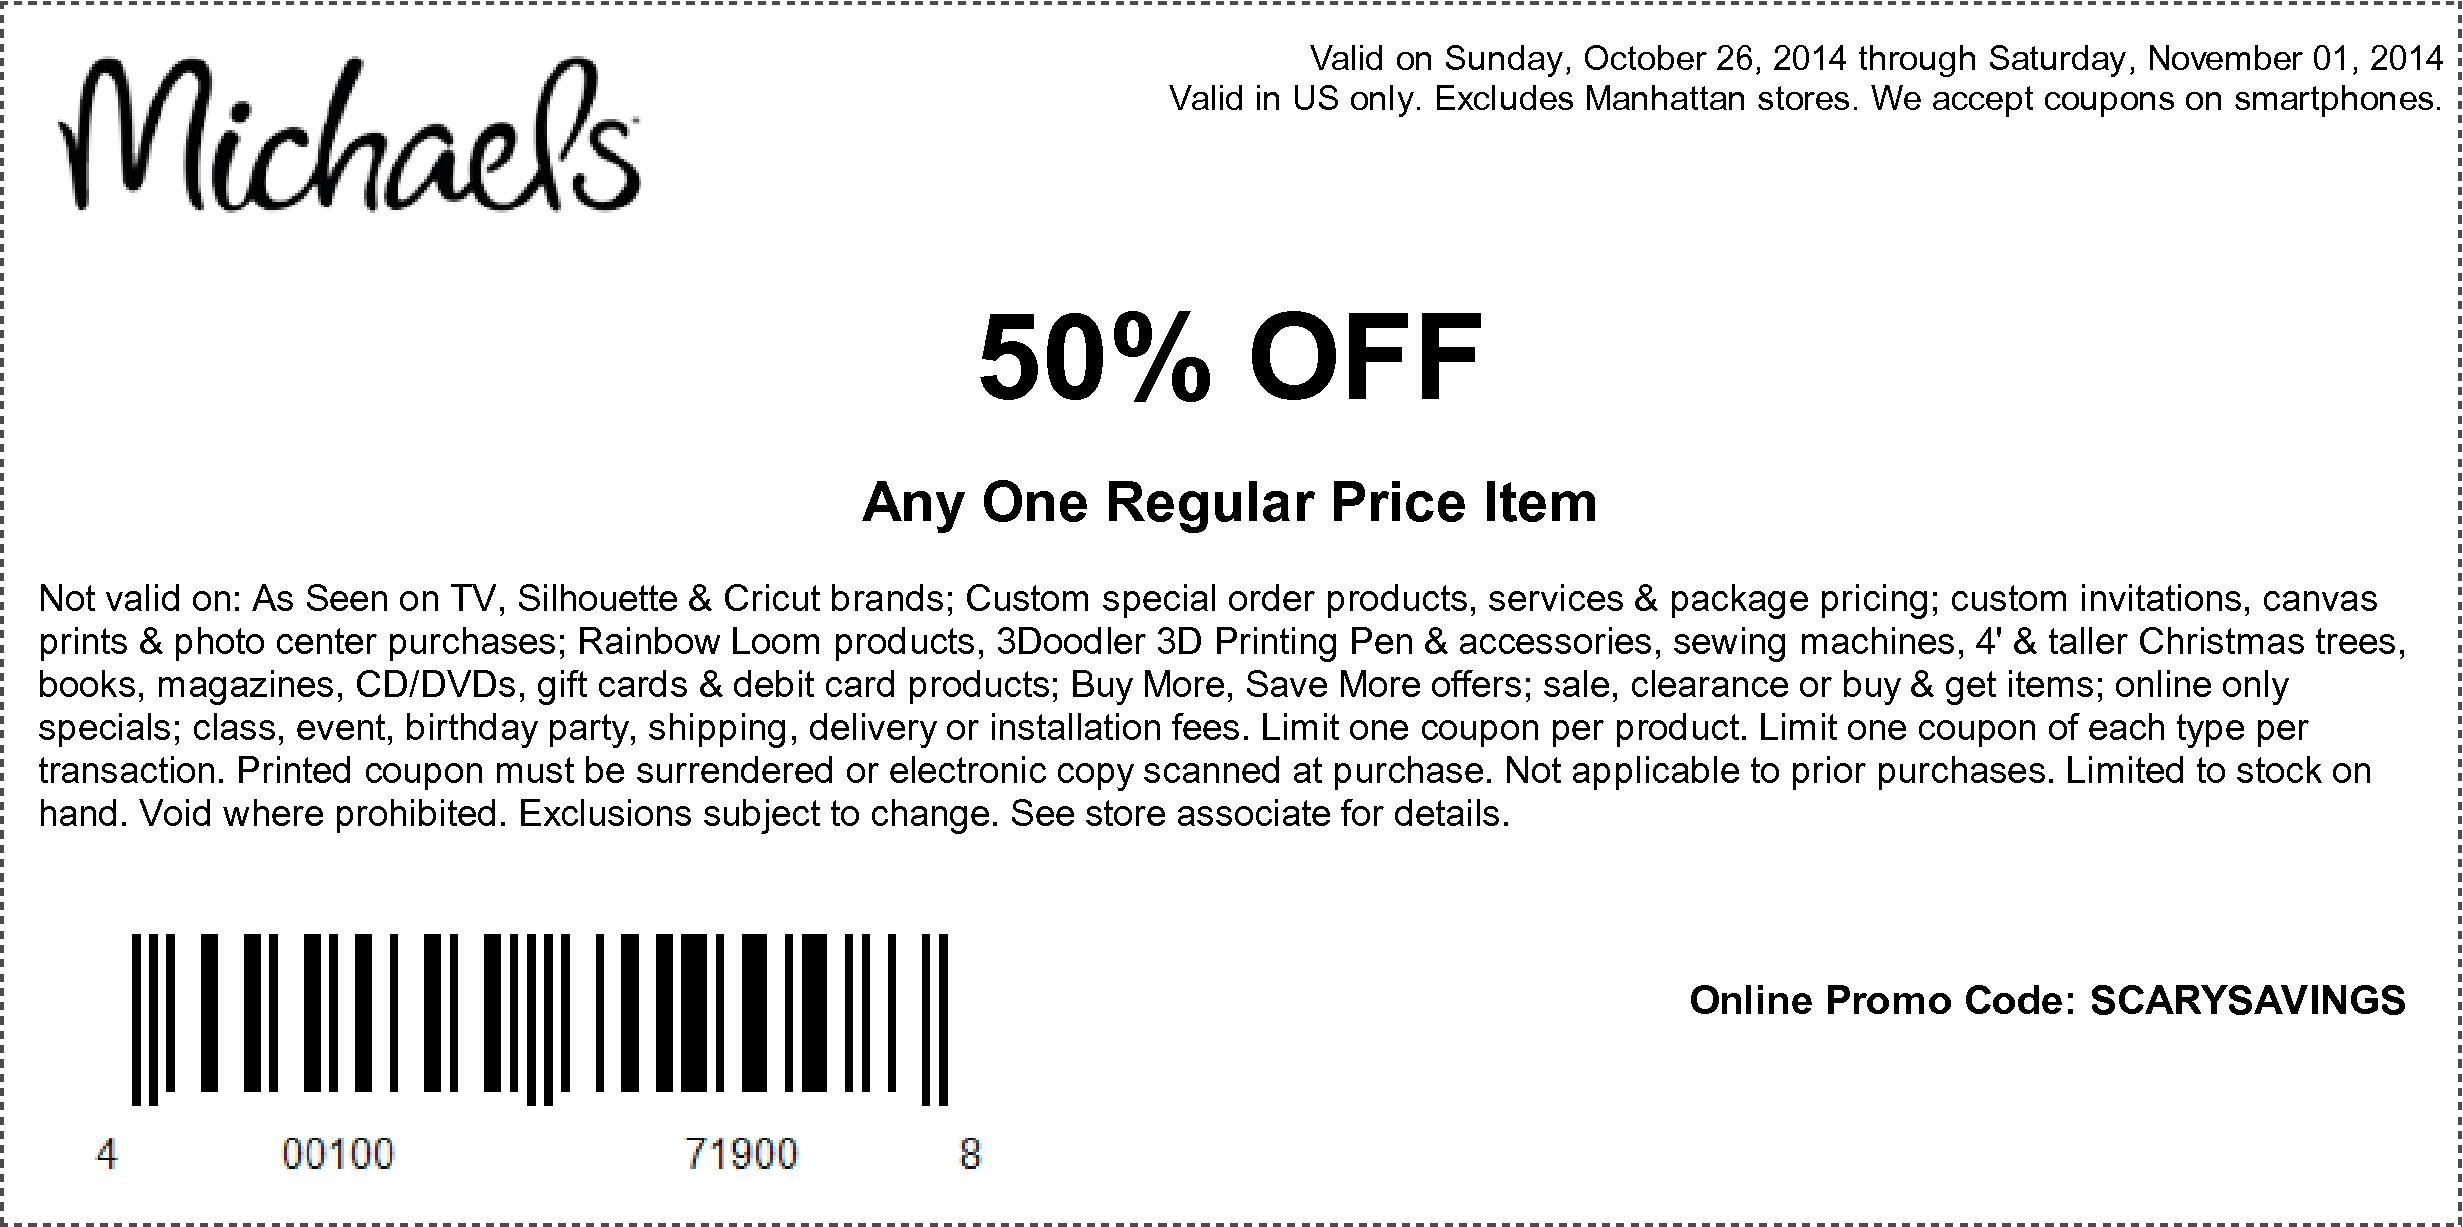 october 30 retail roundup - michaels, famous footwear, old navy